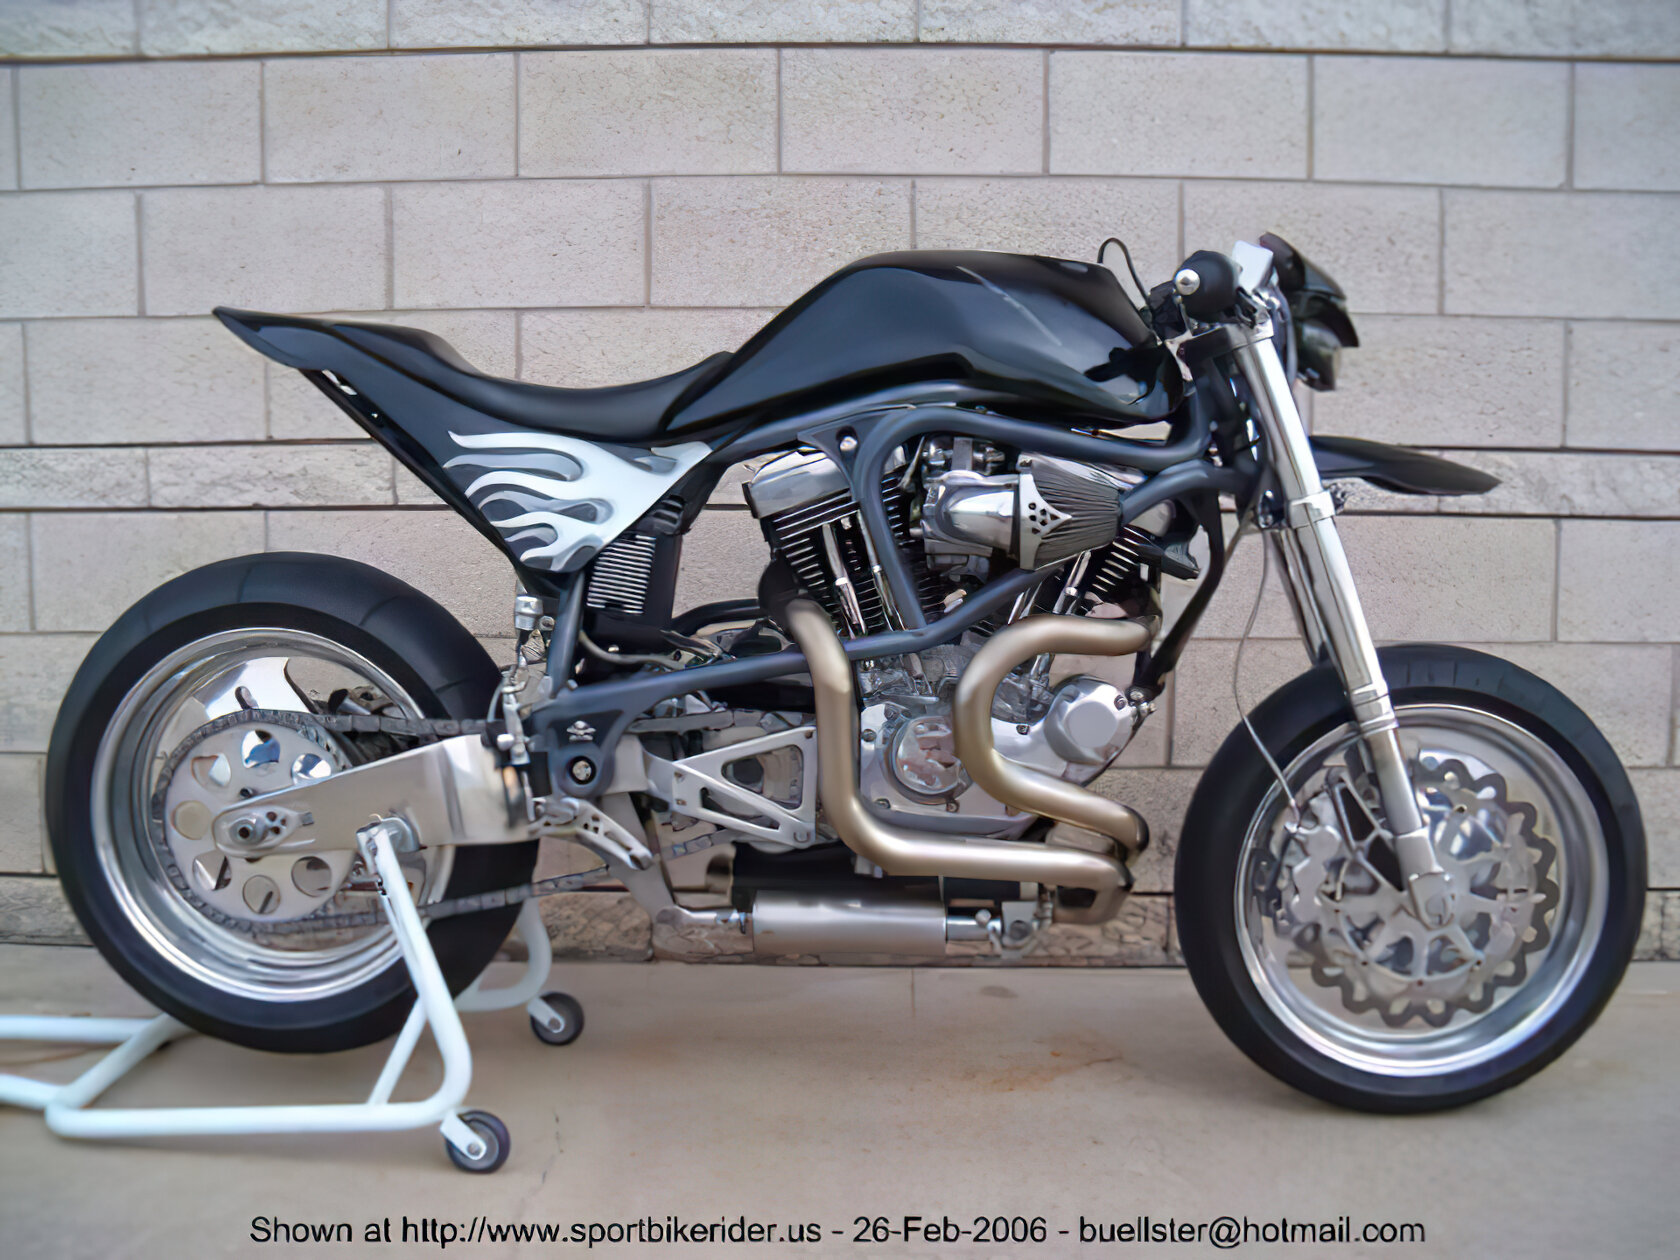 Buell S1/S2/S3 - ID: 97201